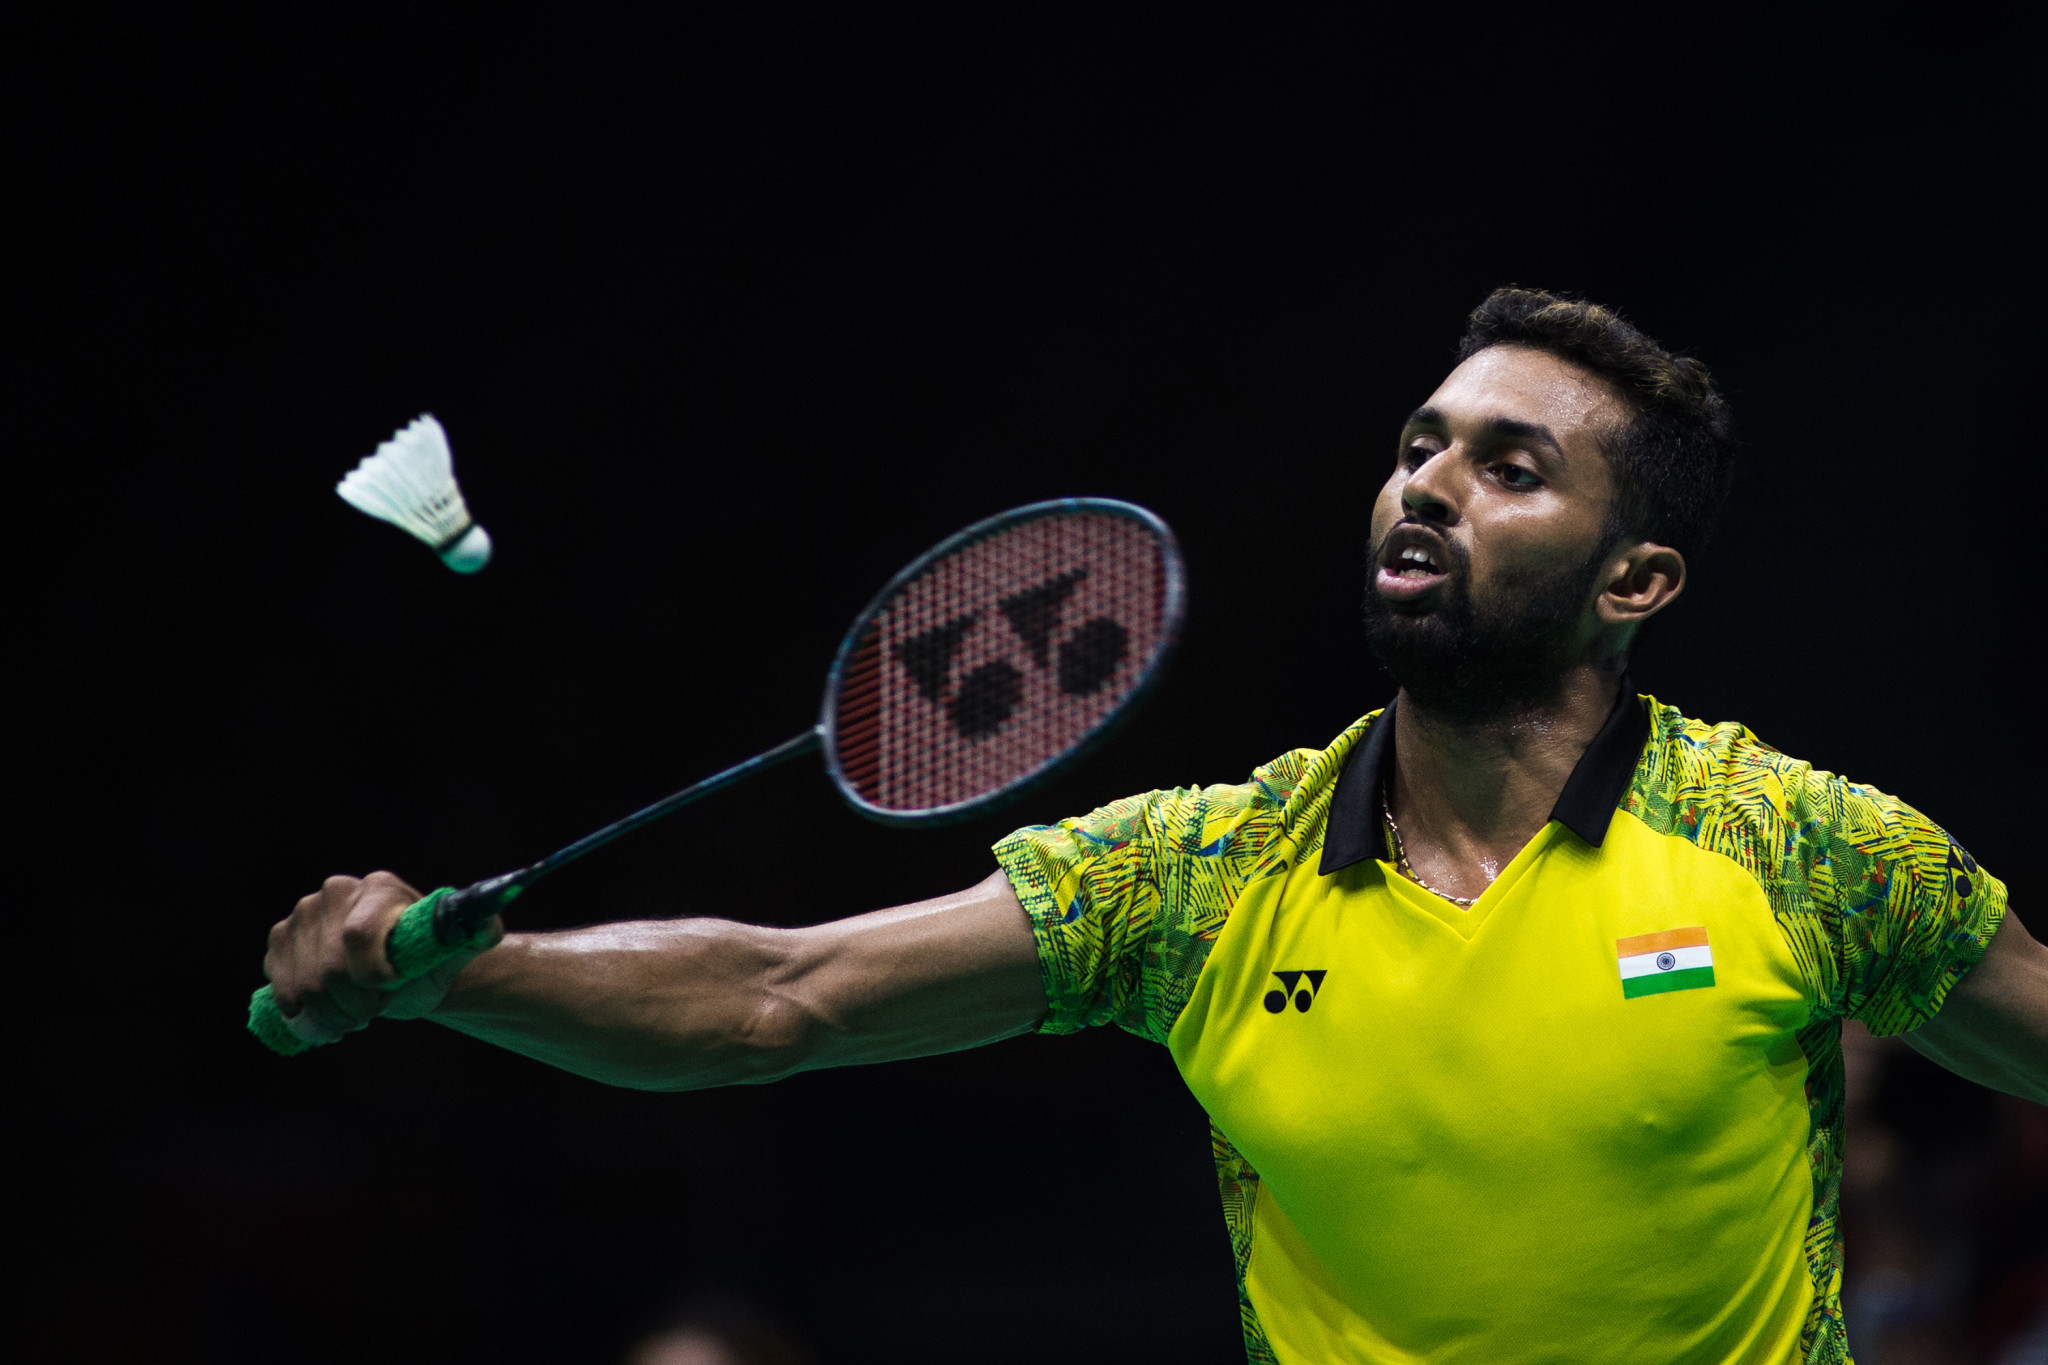 Top seed in the men's competition at the BWF Syed Modi International, Prannoy Kumar, suffered a shock exit in the first round ©Getty Images